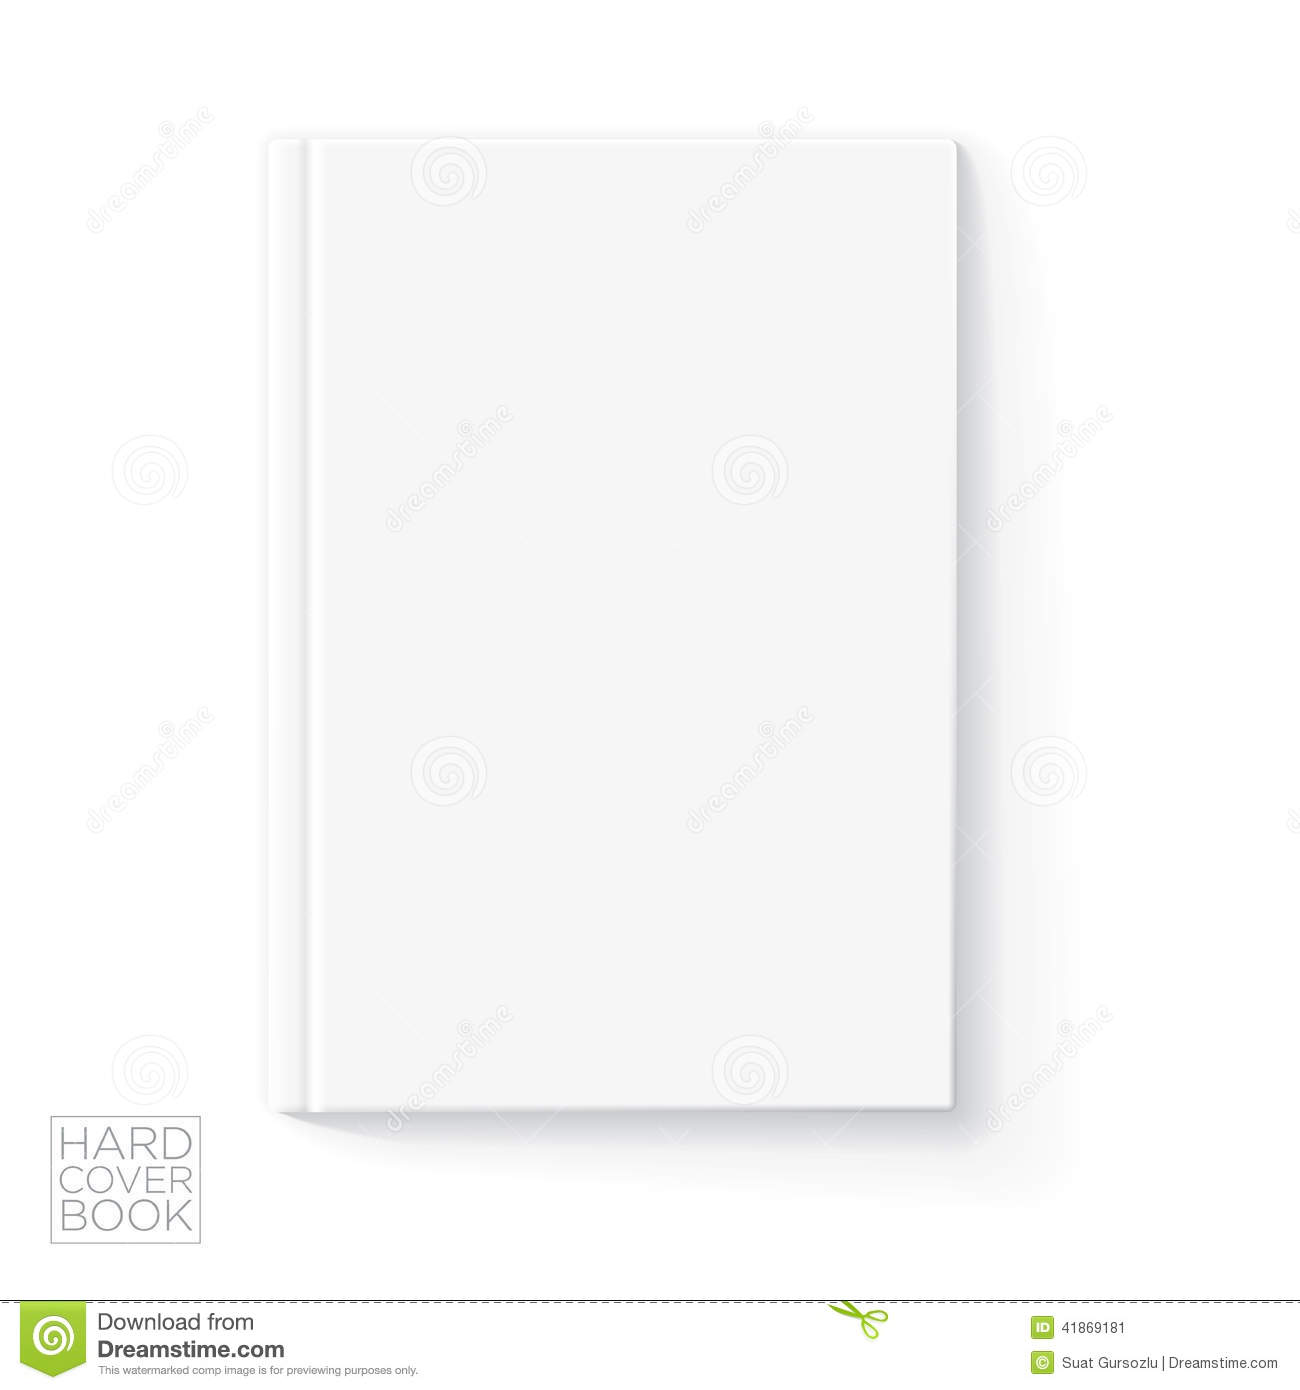 Hard cover book template stock vector image 41869181 for Book cover template illustrator